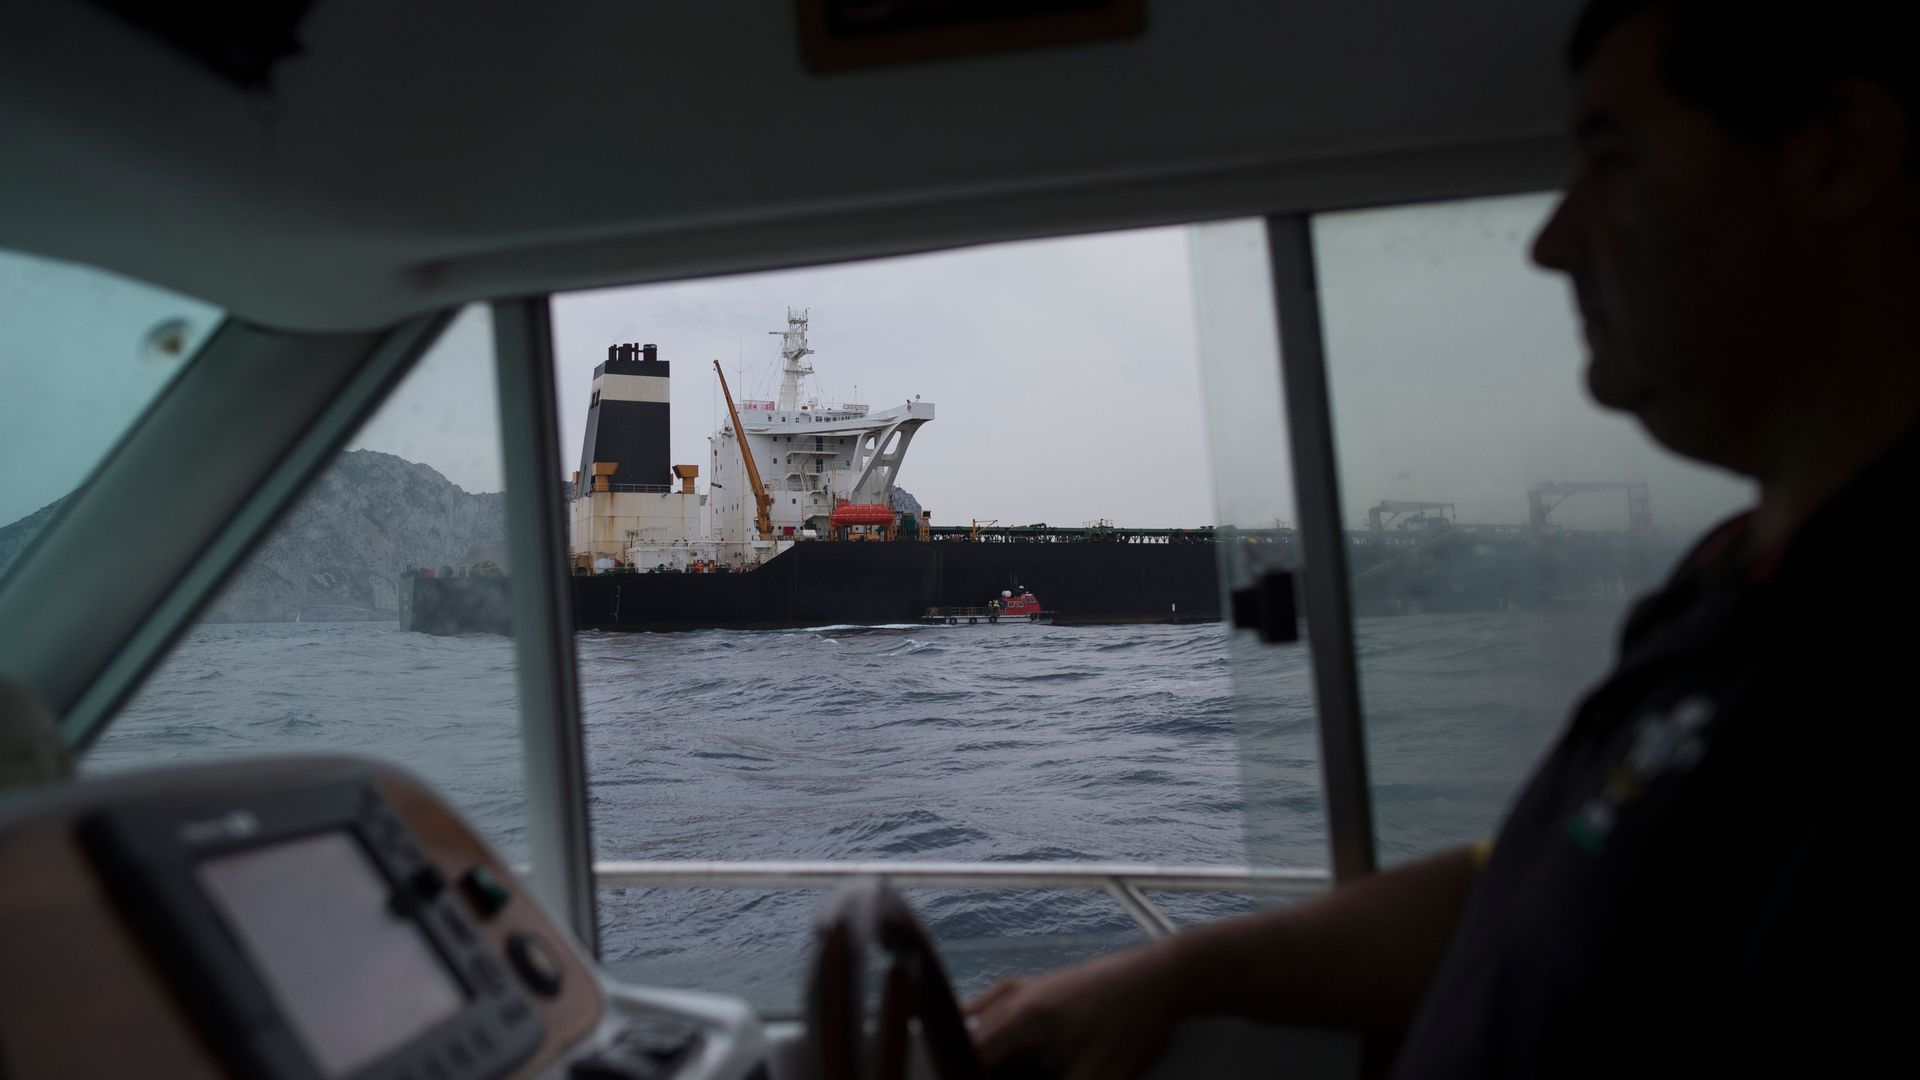 This image shows a boat through another boat's window